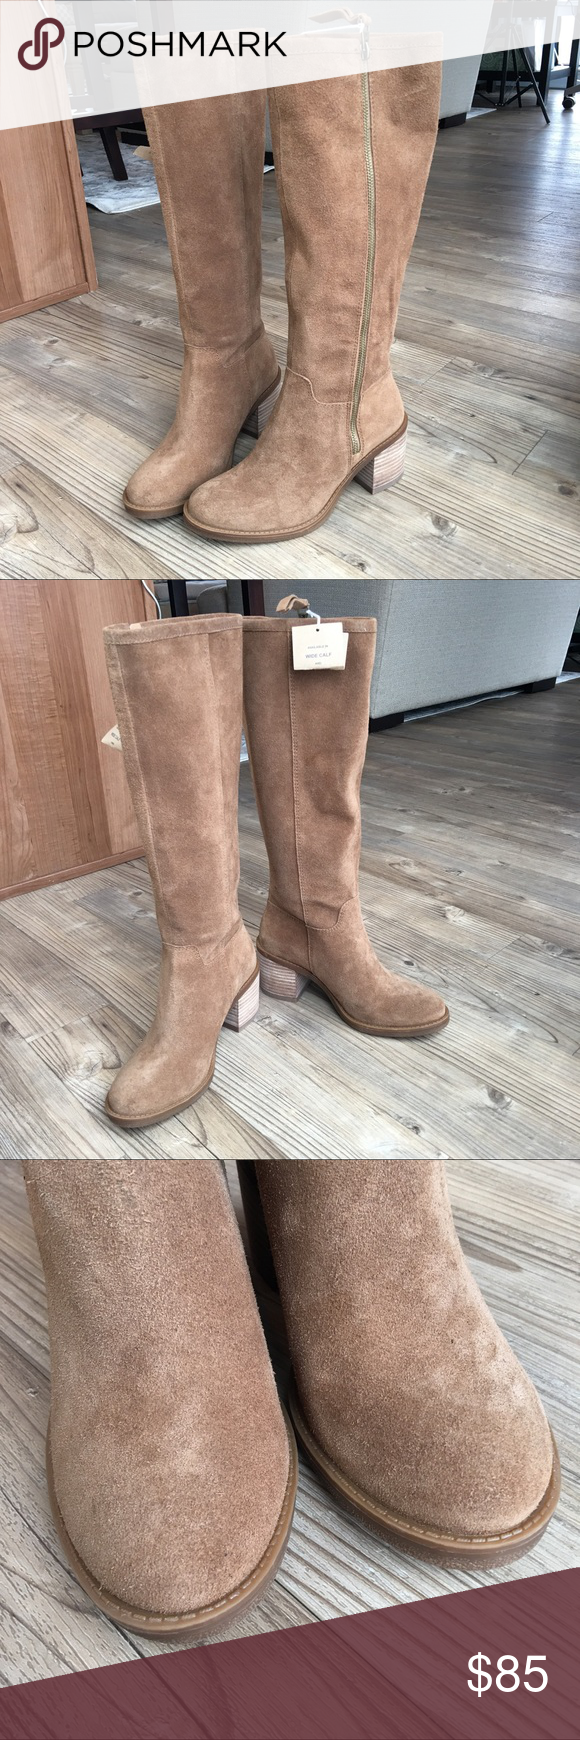 0ea6bdb70ca Lucky Brand Resper Brown Suede Boots 6 New Without Box Lucky Brand Resper  Knee High Brown Suede Boots. Size 6M - Color  Honey Oiled Brown - Suede  with a ...